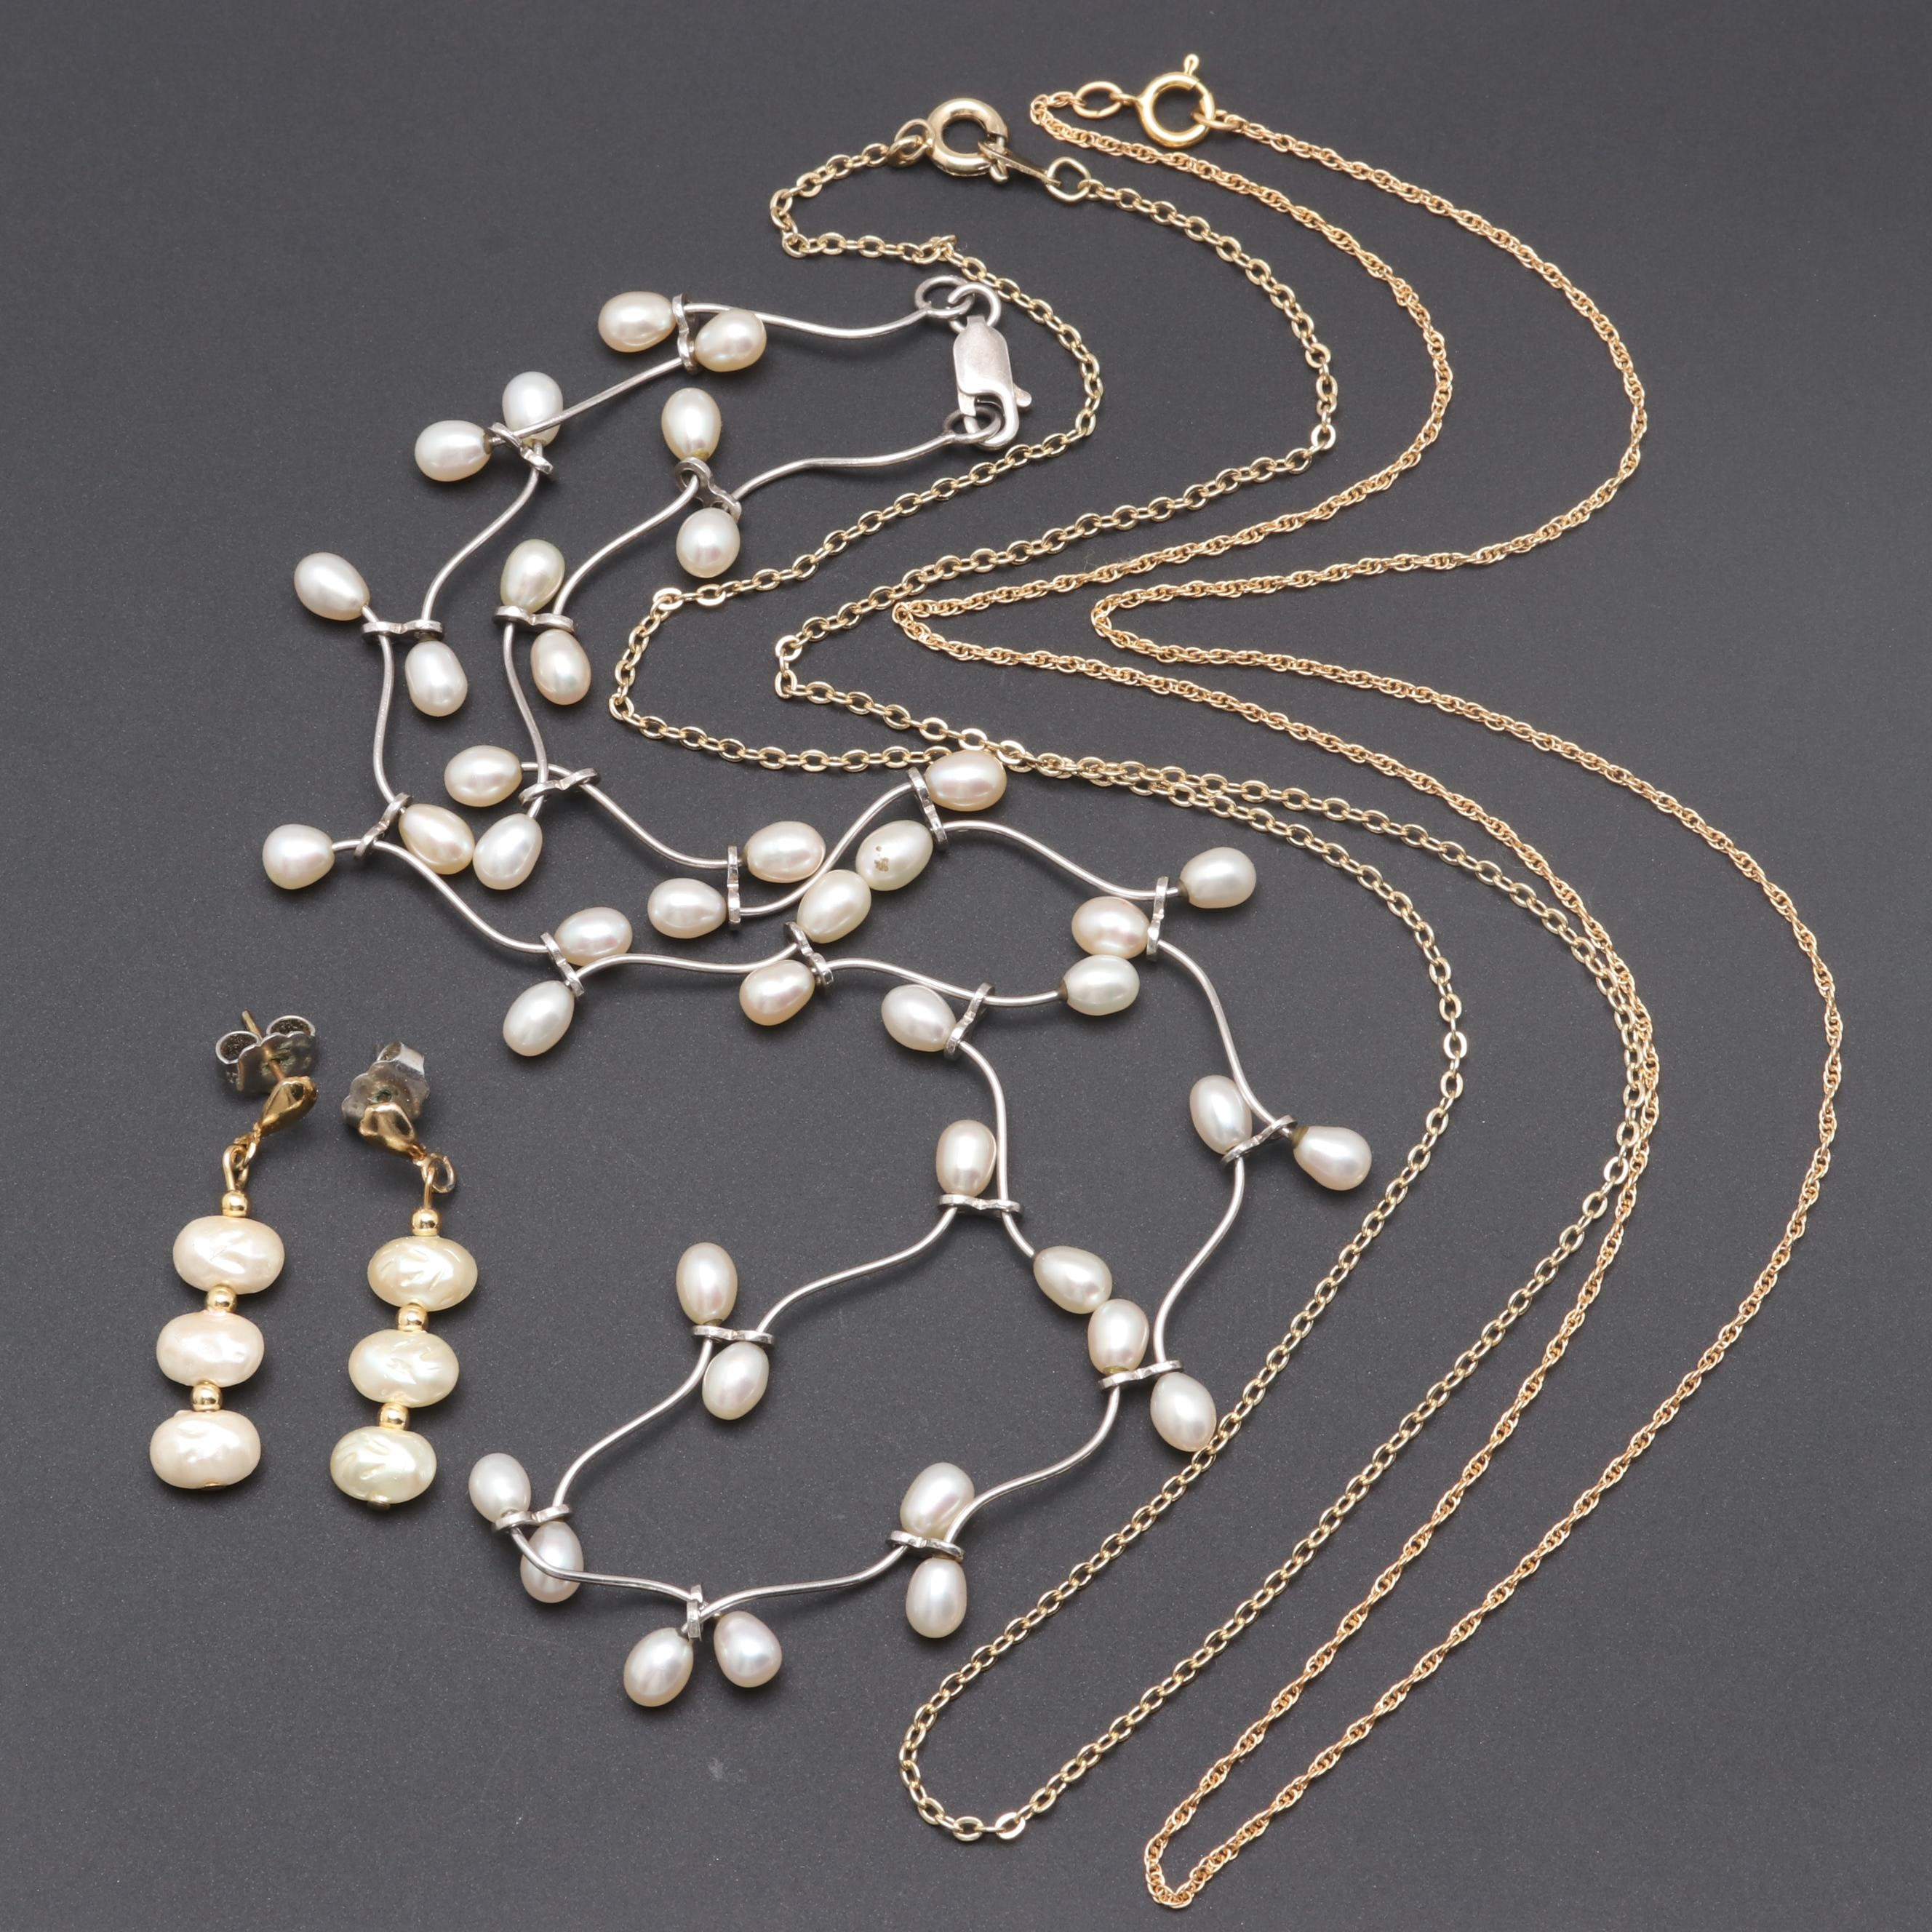 Costume Jewelry Assortment Including Sterling Silver and Cultured Pearl